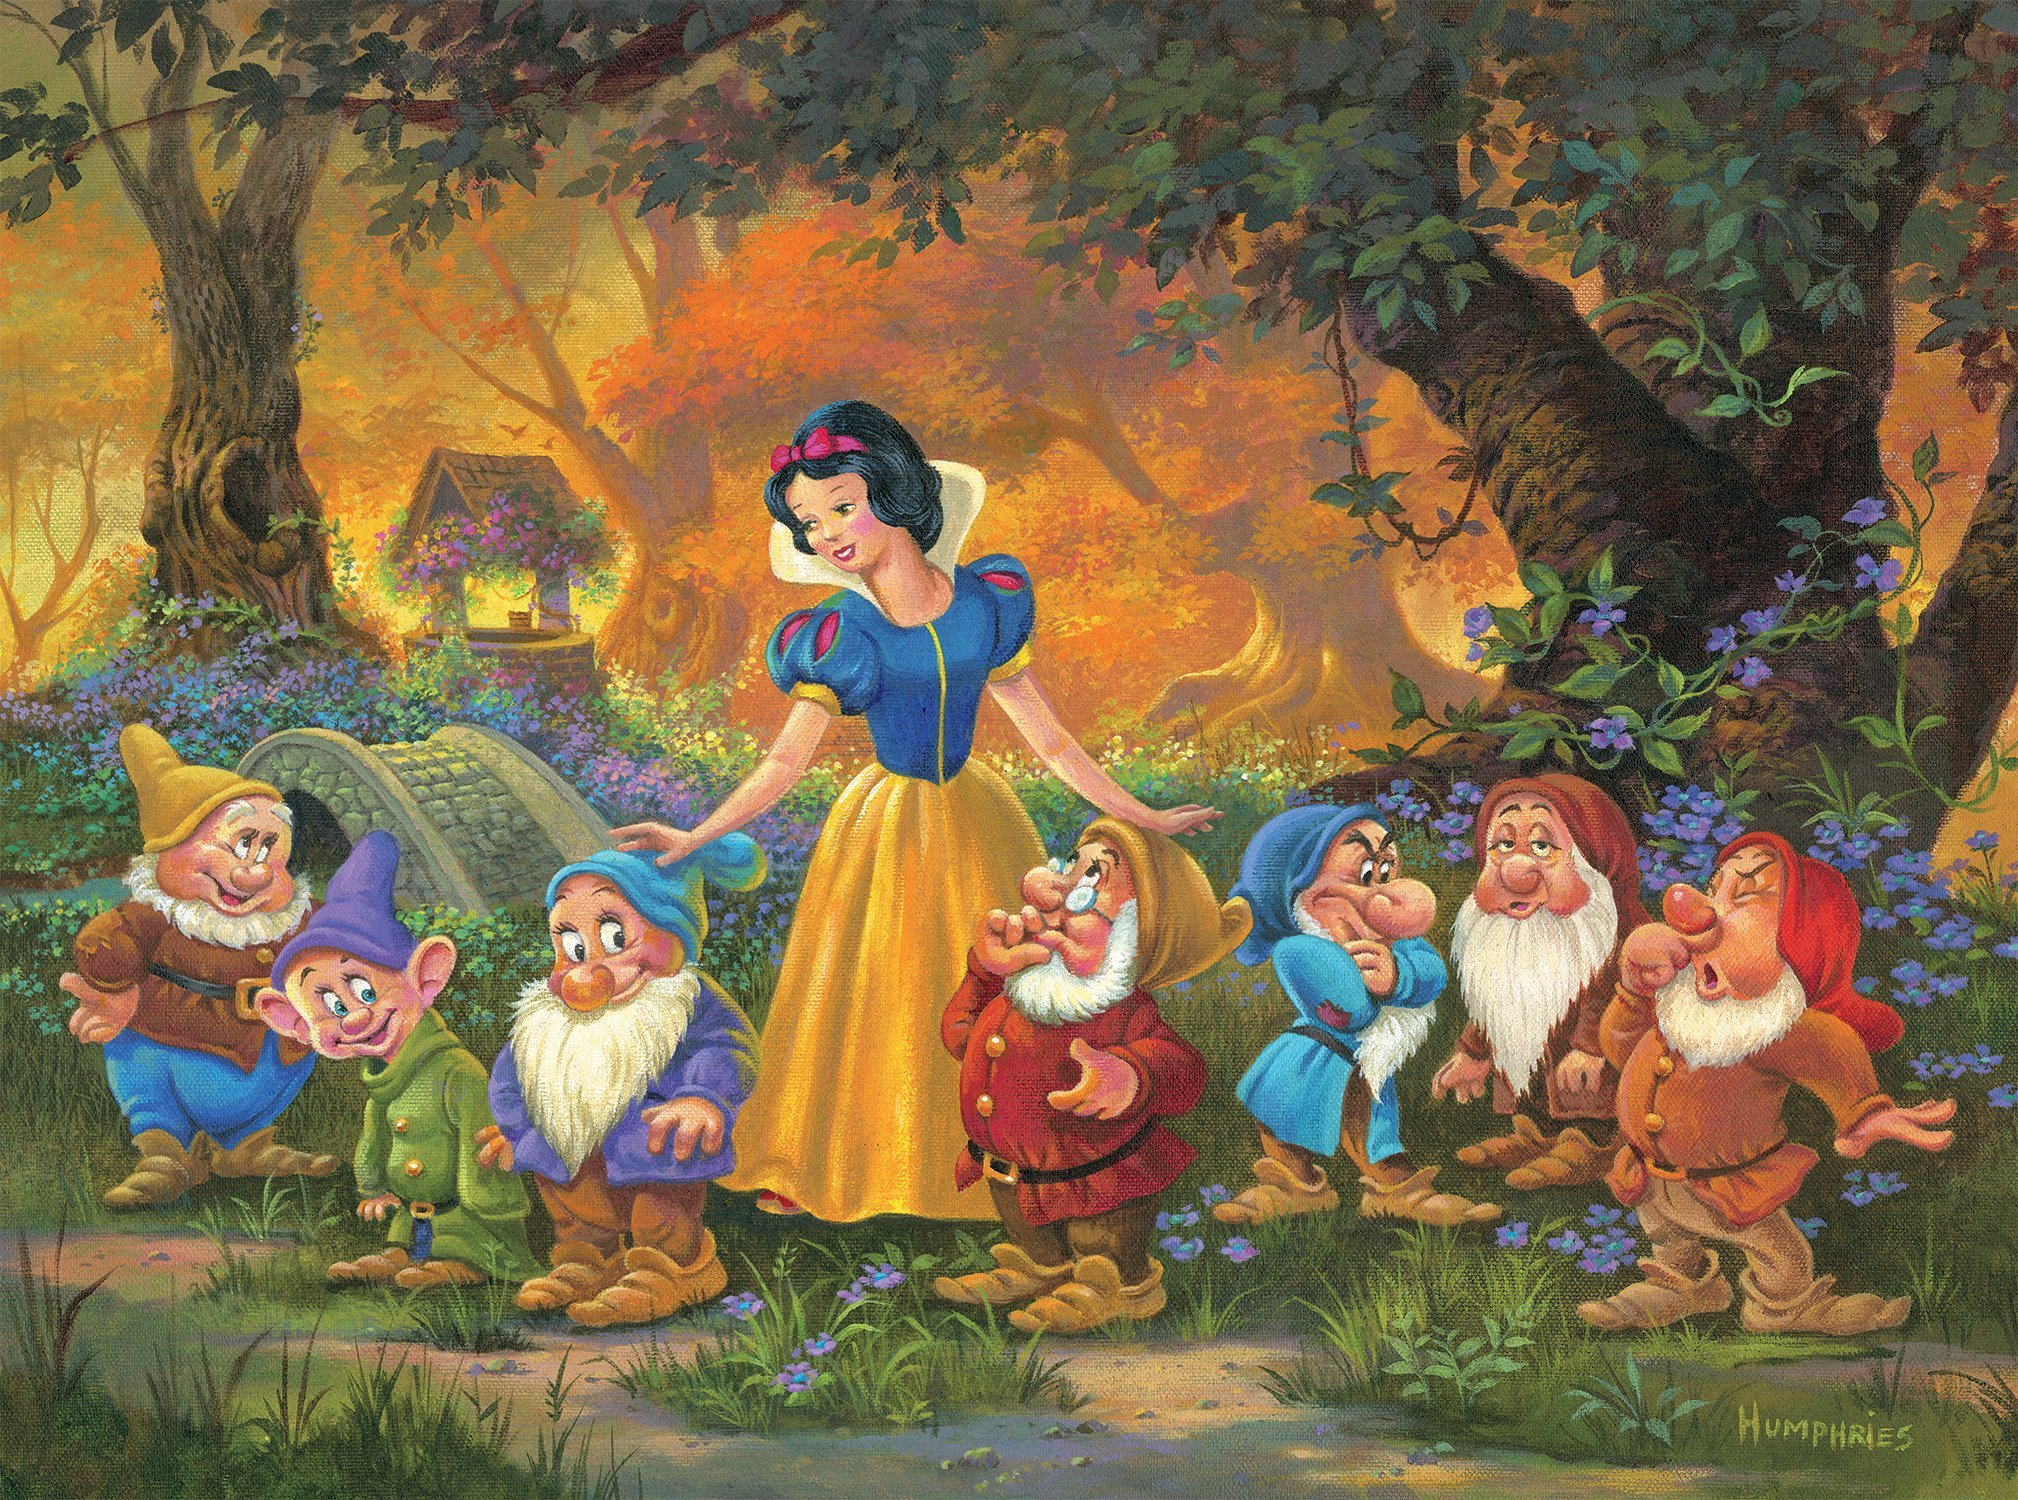 Ceaco Snow White Among Friends Disney Fine Art Puzzle-1000 Piece